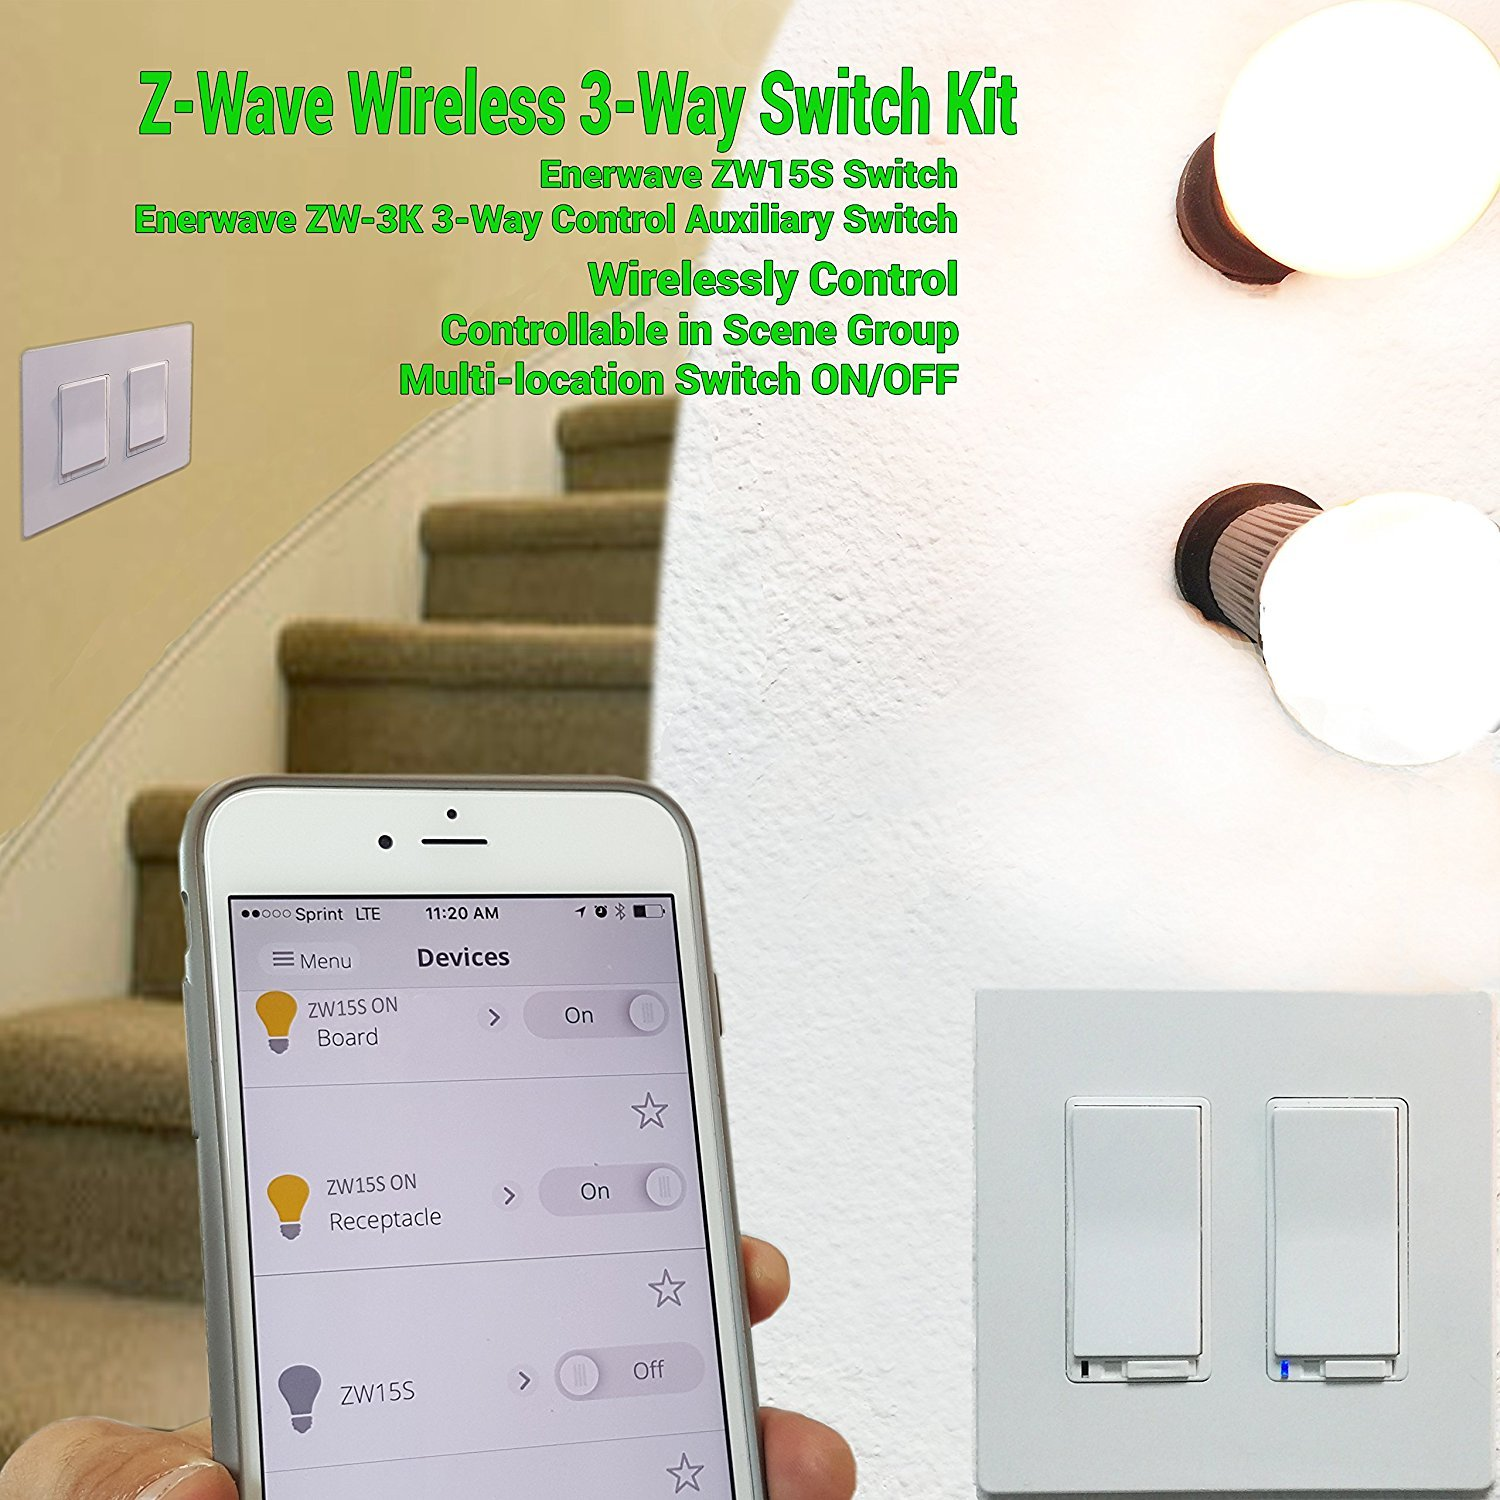 Zw15s 3 Way Wiring Diagram Another Diagrams Smart Switch Add On By Enerwave Z Wave Home Rh Amazon Com 2